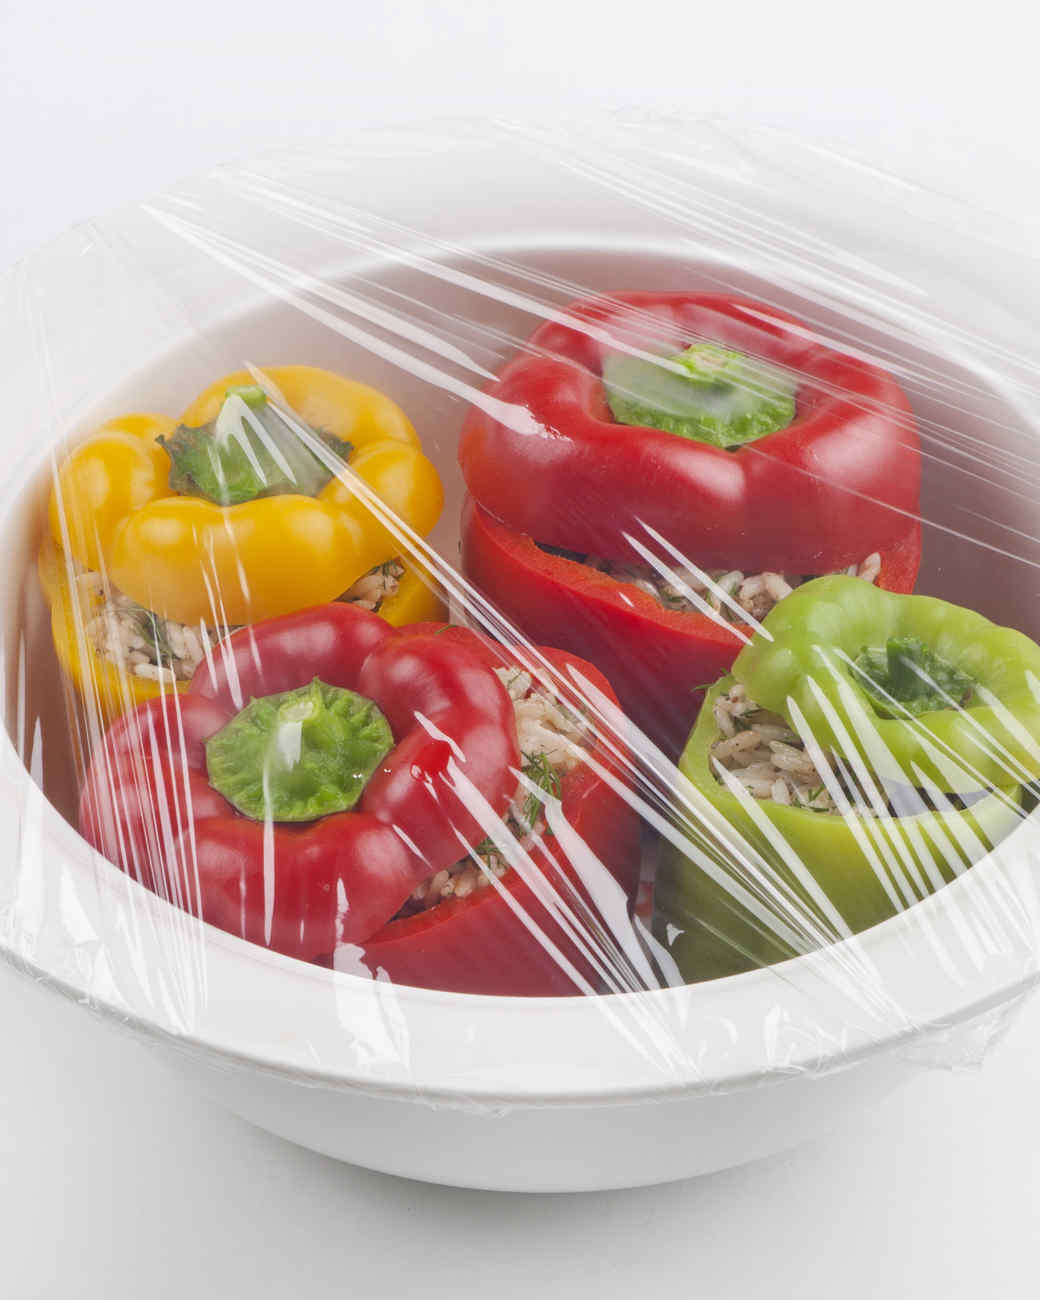 plastic-wrap-peppers-meal-prep